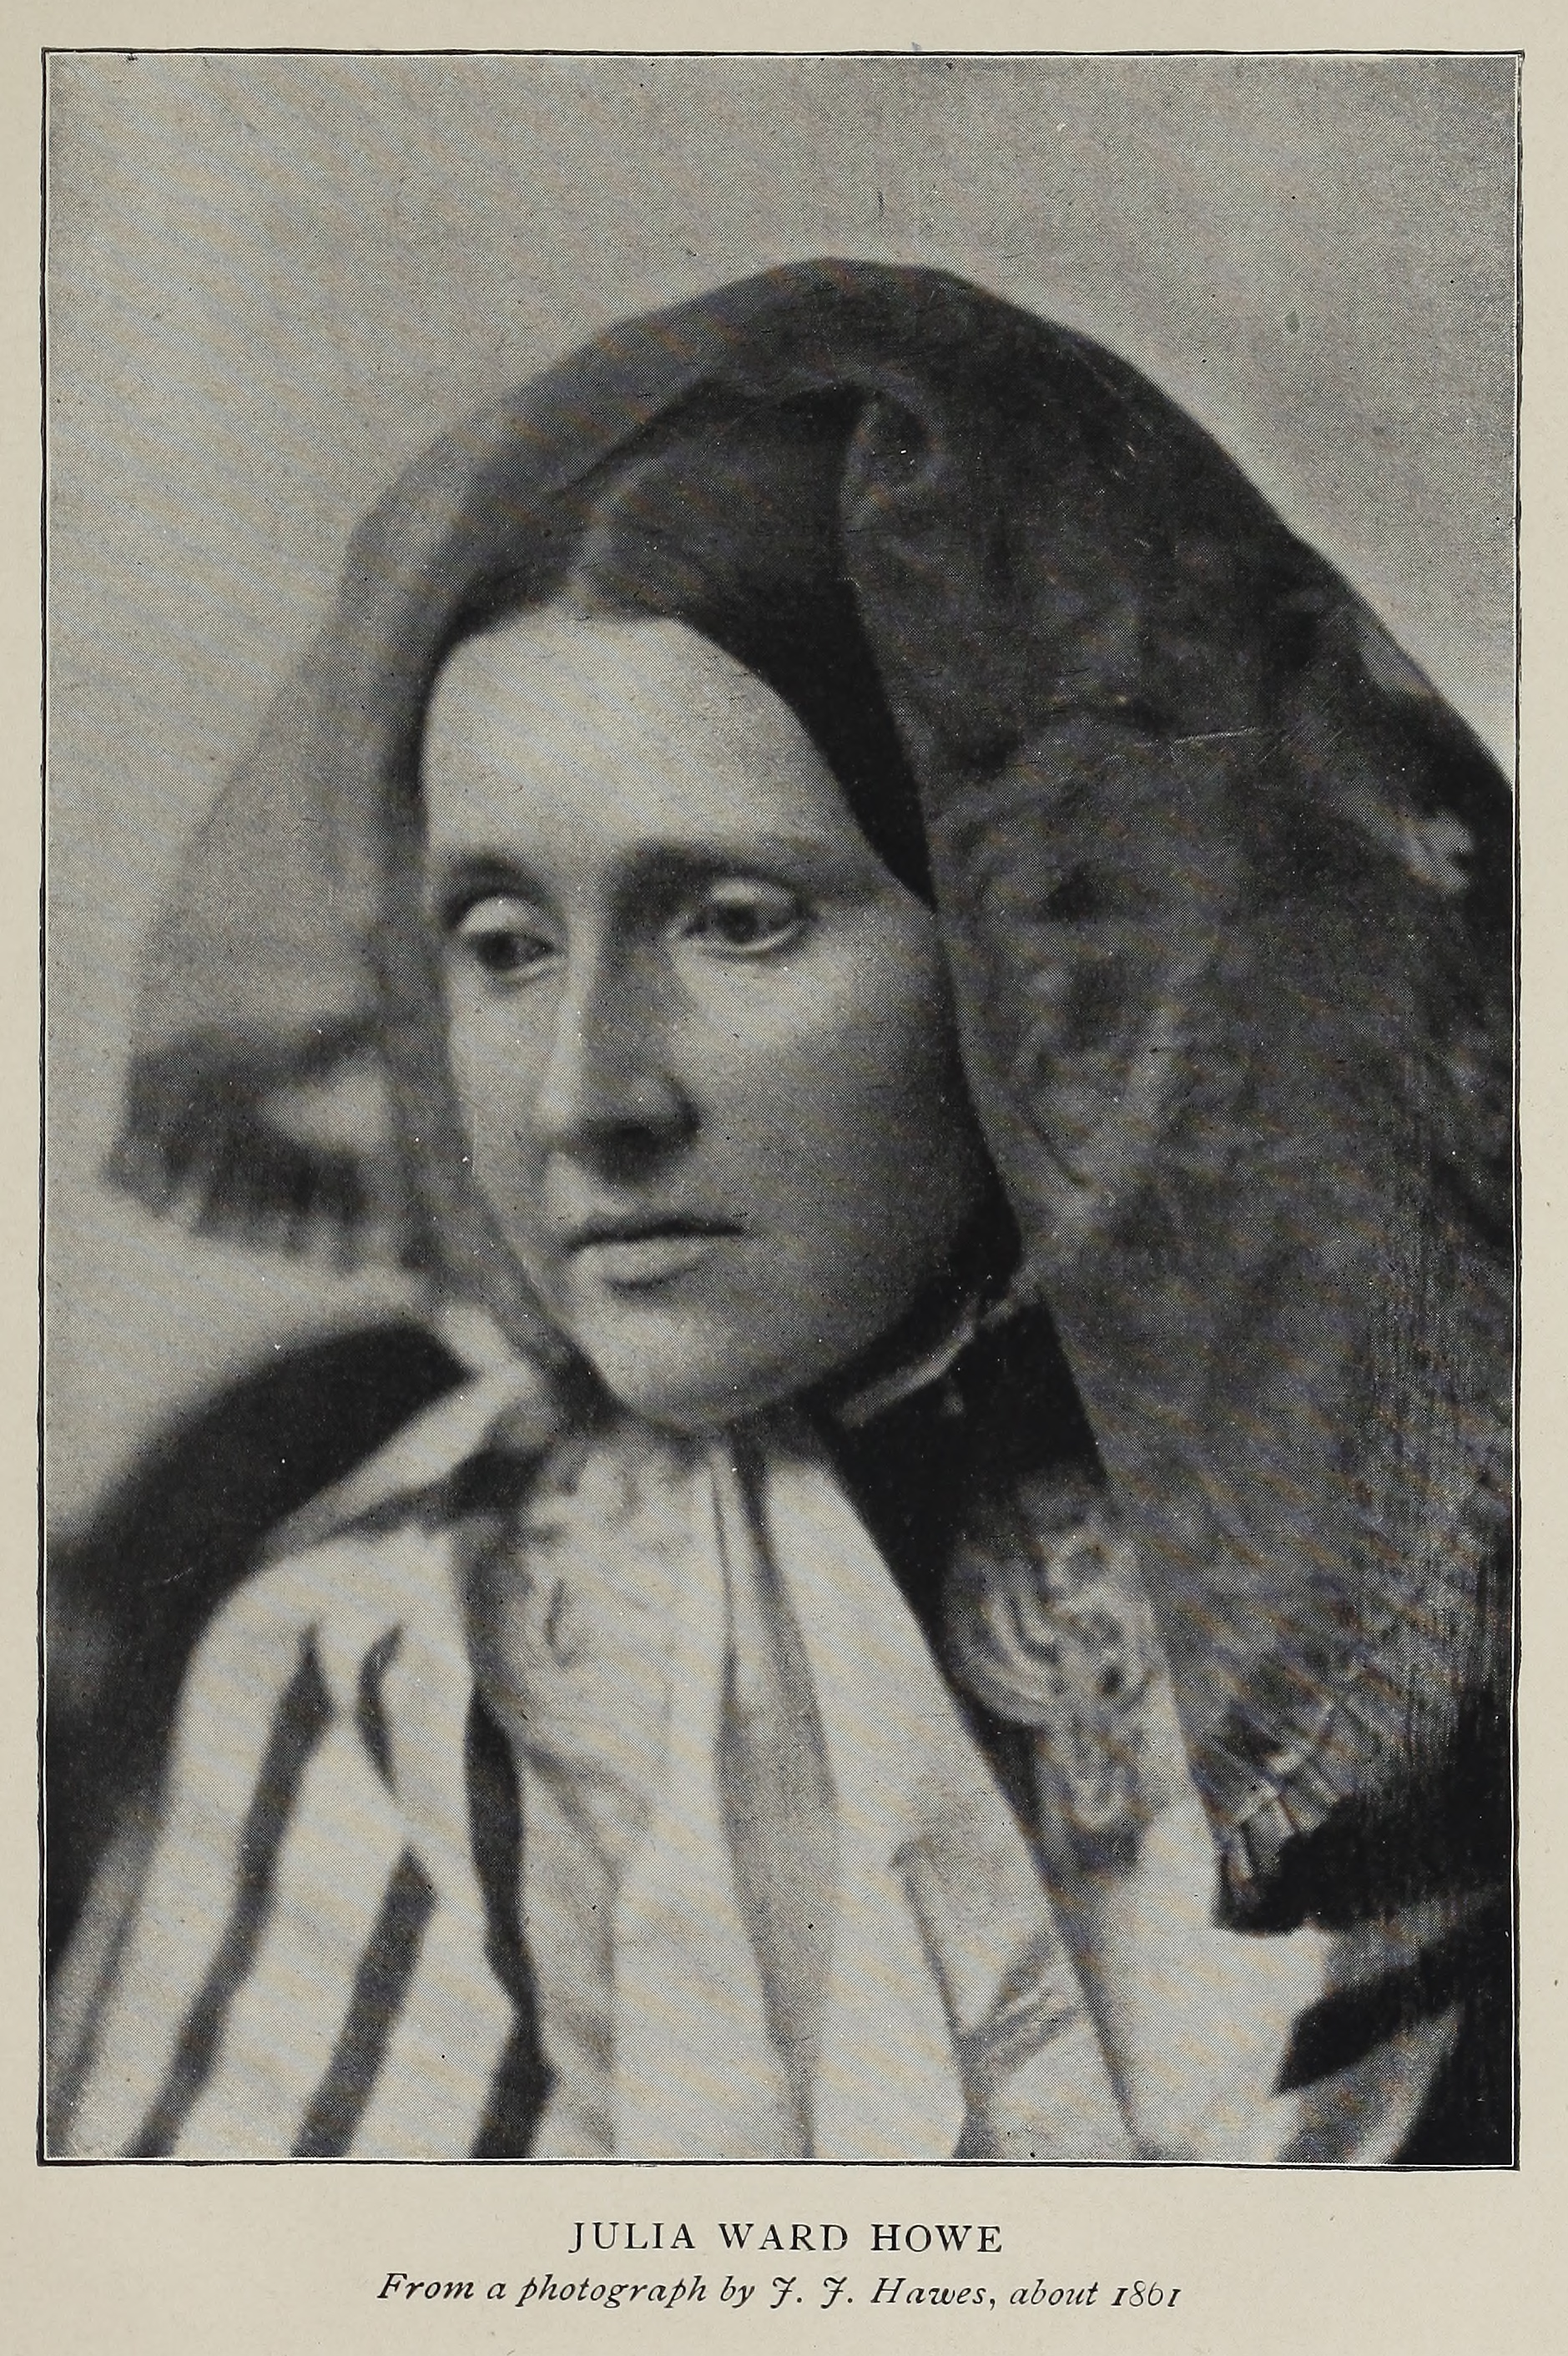 Julia Ward Howe , photo by J.J. Hawes (ca. 1861), in  Reminiscences  (1899).